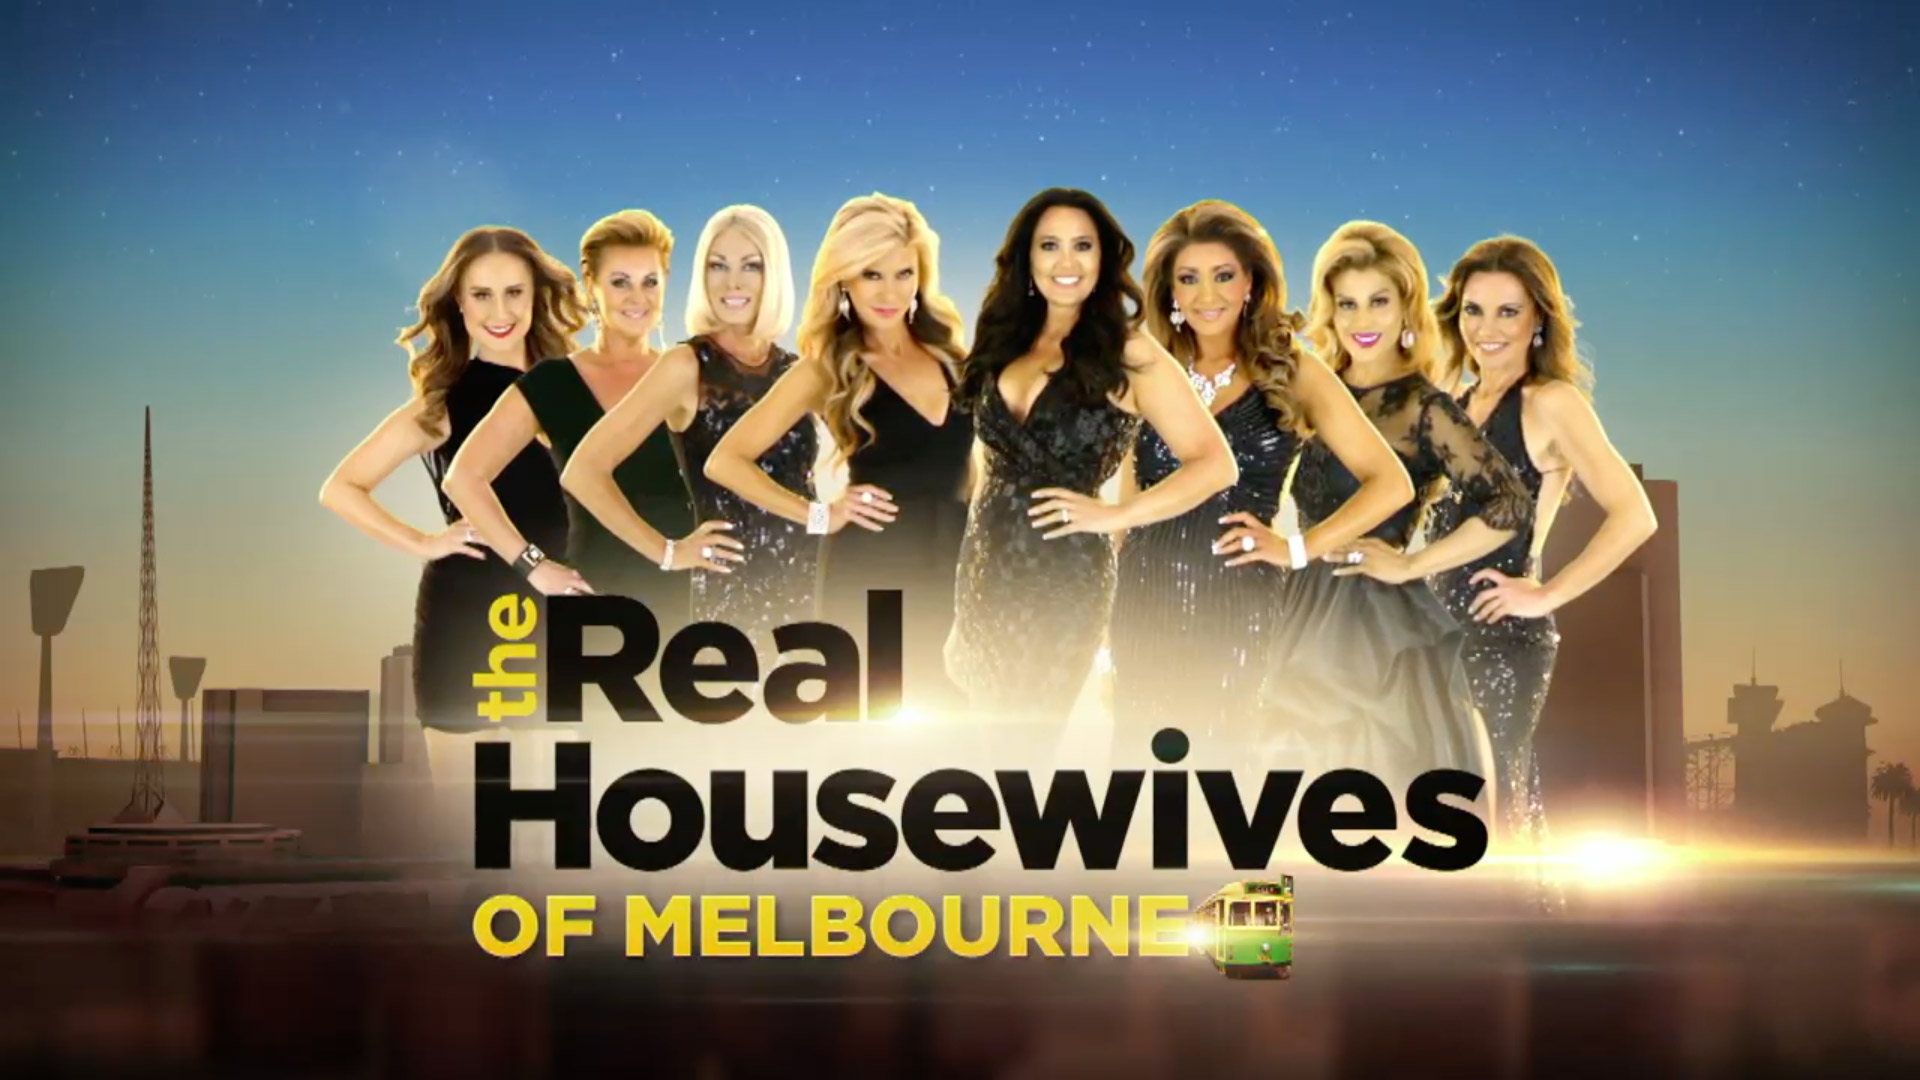 The real housewives of melbourne download